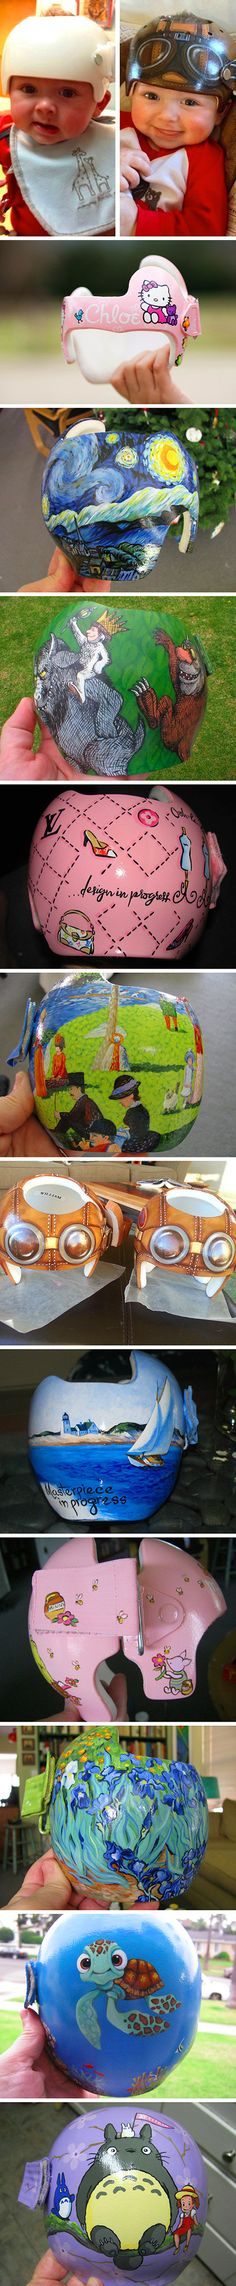 Geeky Artist Transforms Babies Corrective Helmets Into Works of Art